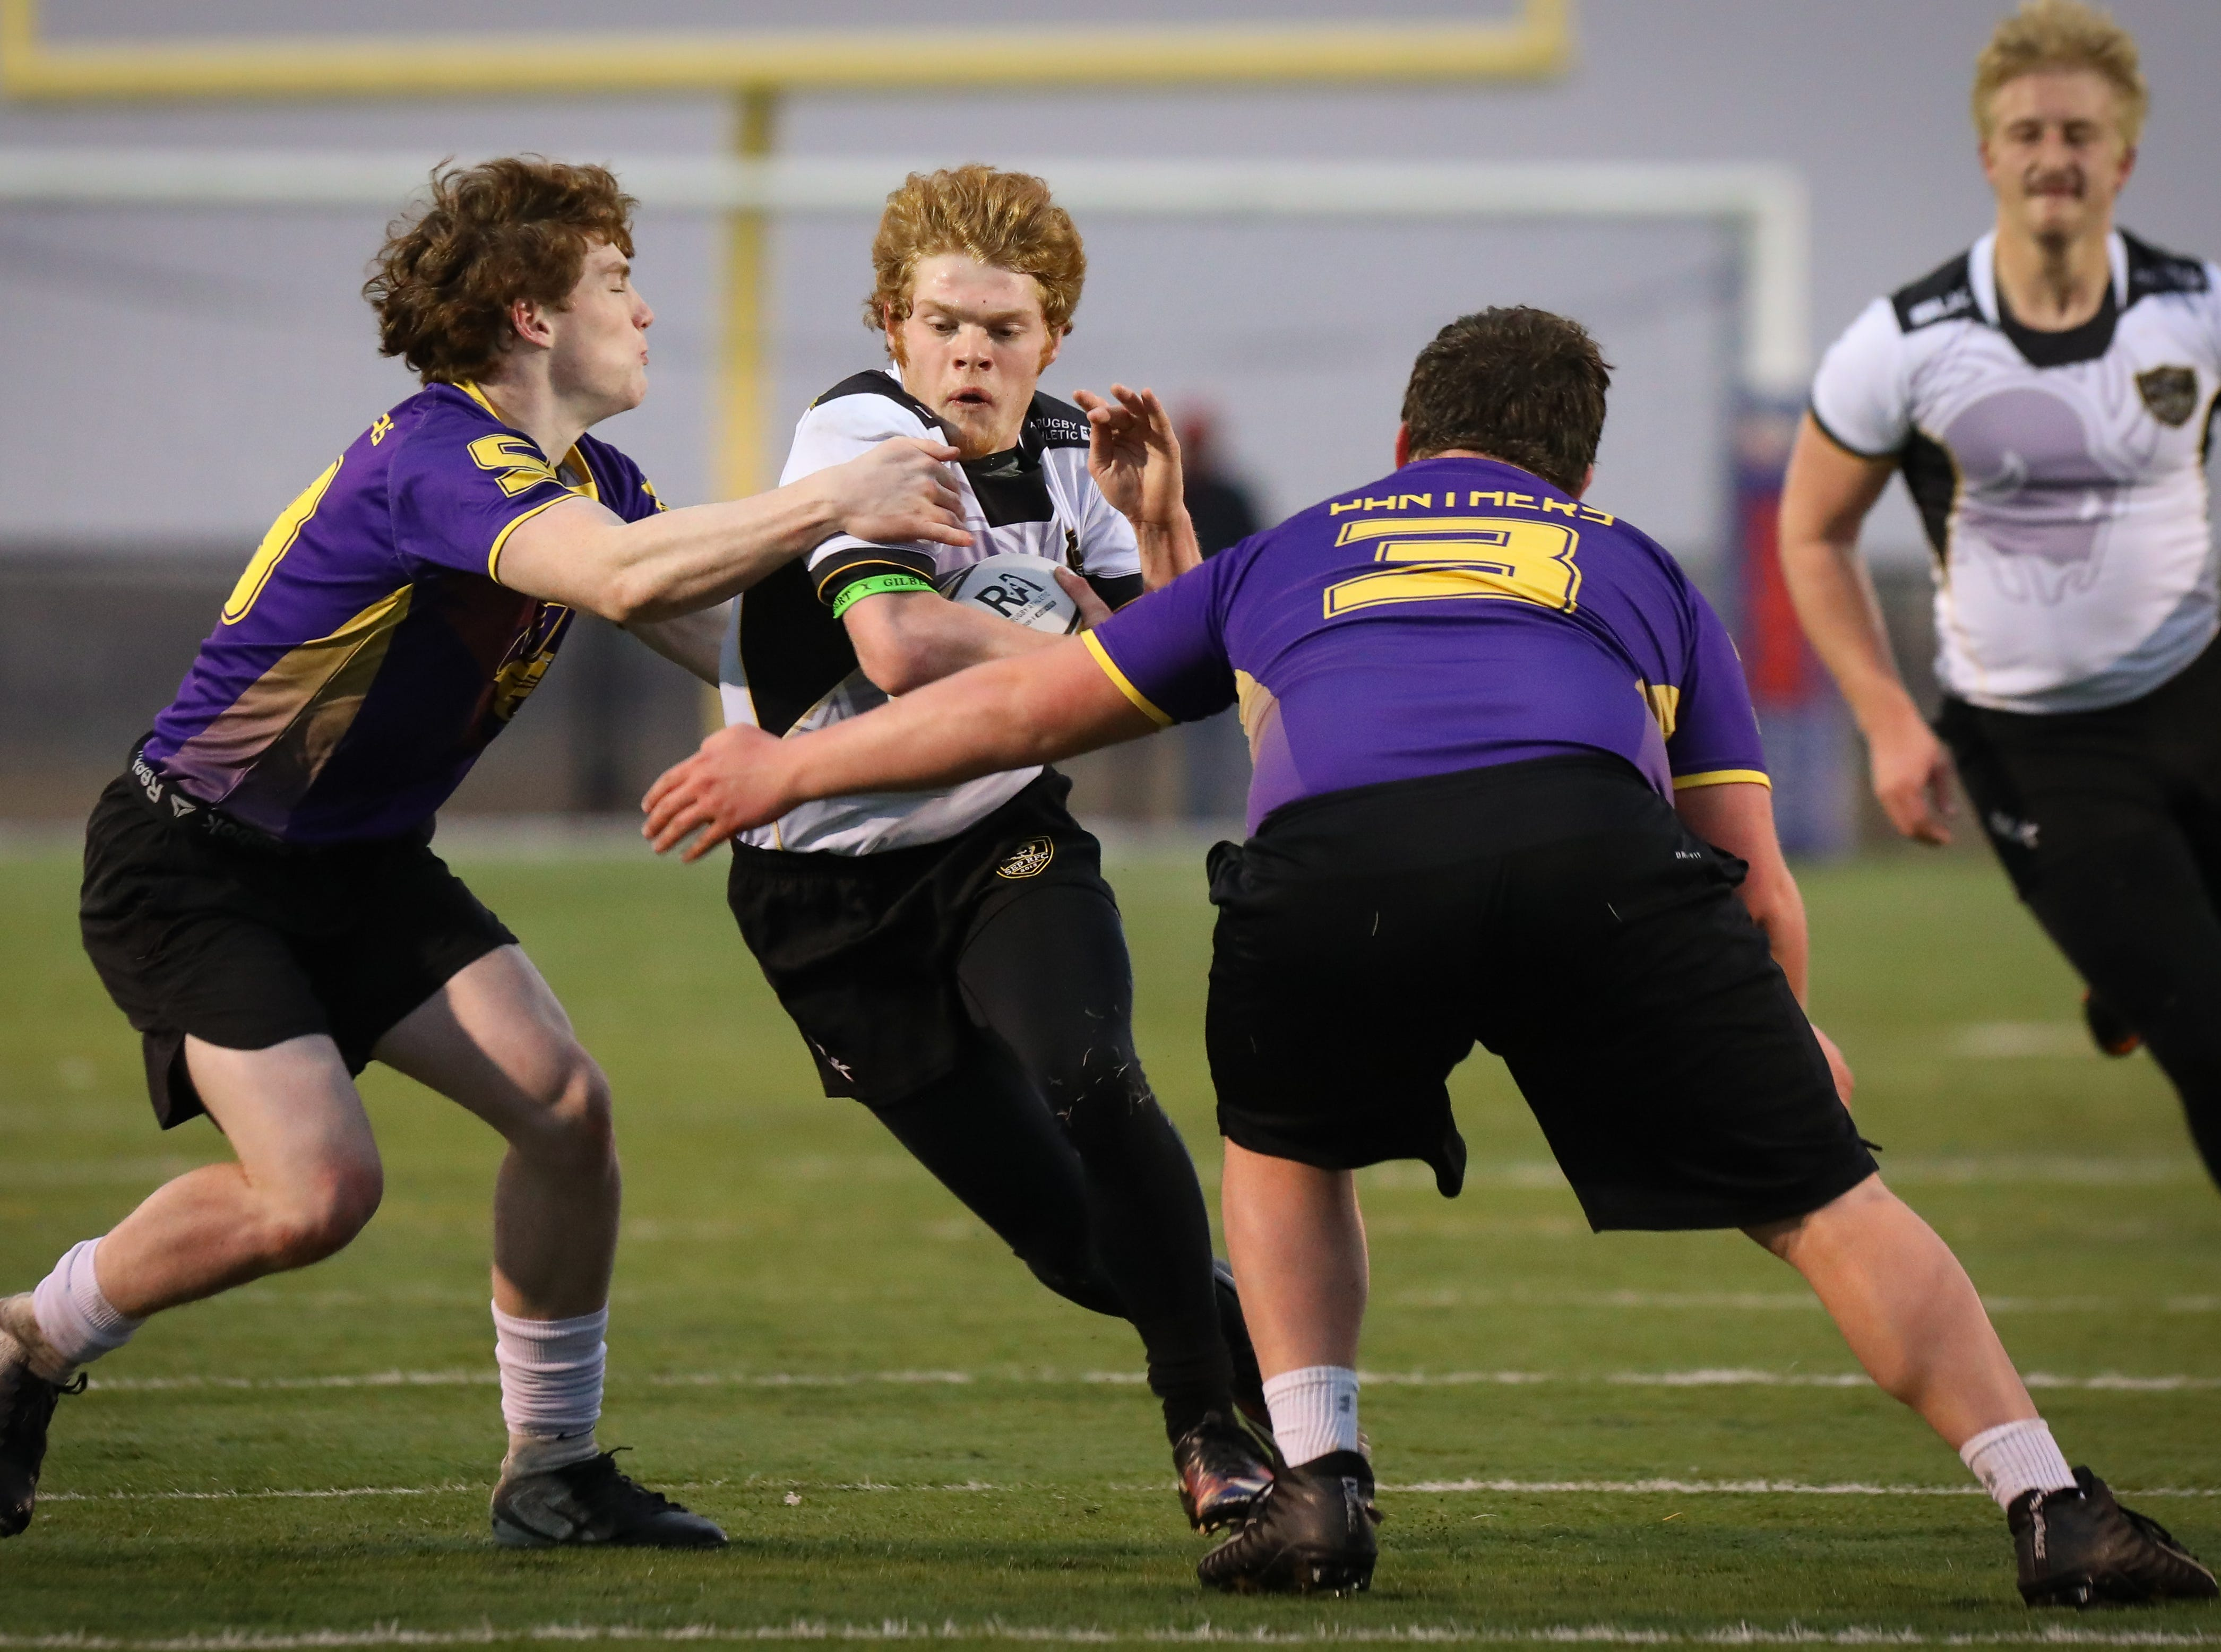 Southeast Polk (white shirts) and Fort Dodge (purple shirts) face off at a high school rugby match Friday, March. 29, 2019 at Spring Creek Sports Complex in Altoona, Iowa. Southeast Polk won their 100th game.